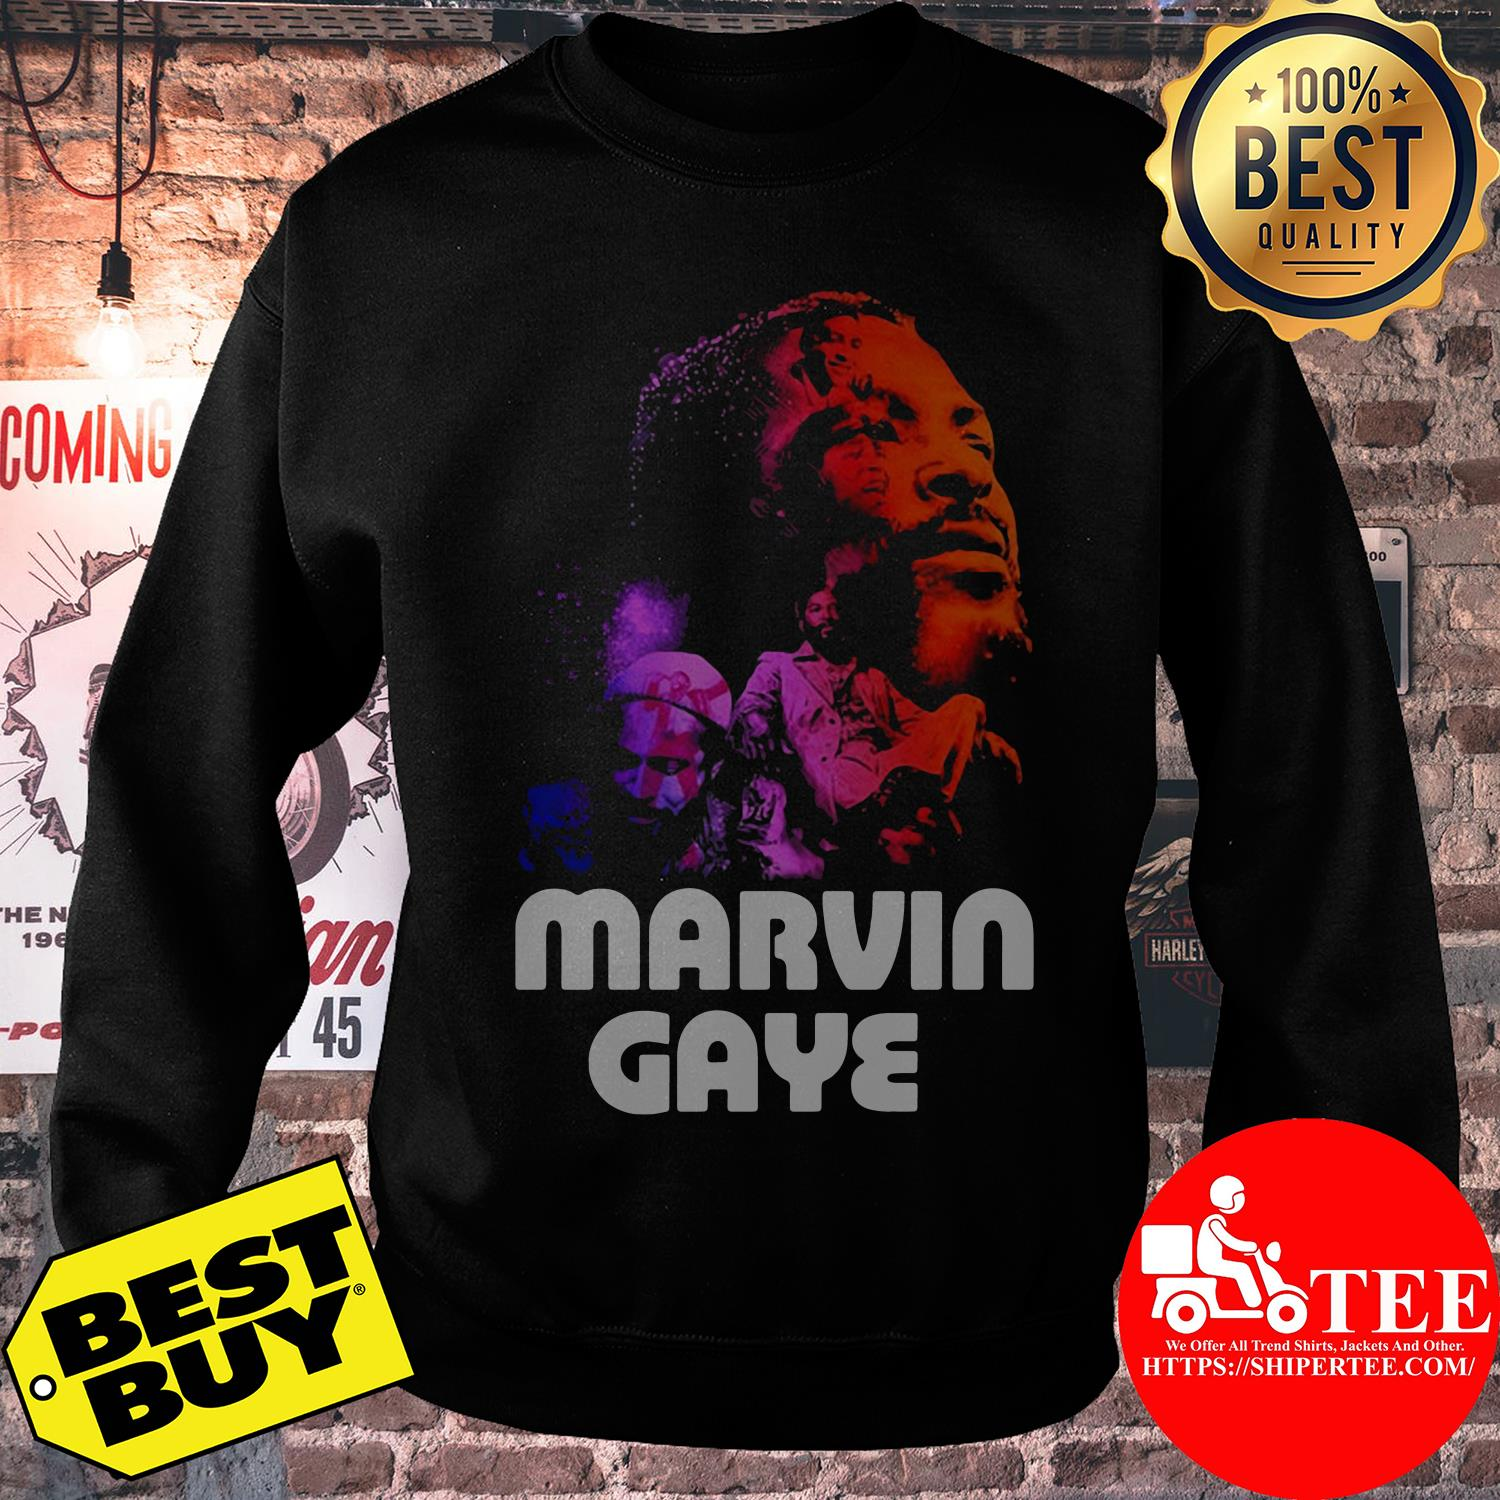 Marvin Gaye Artwork sweatshirt